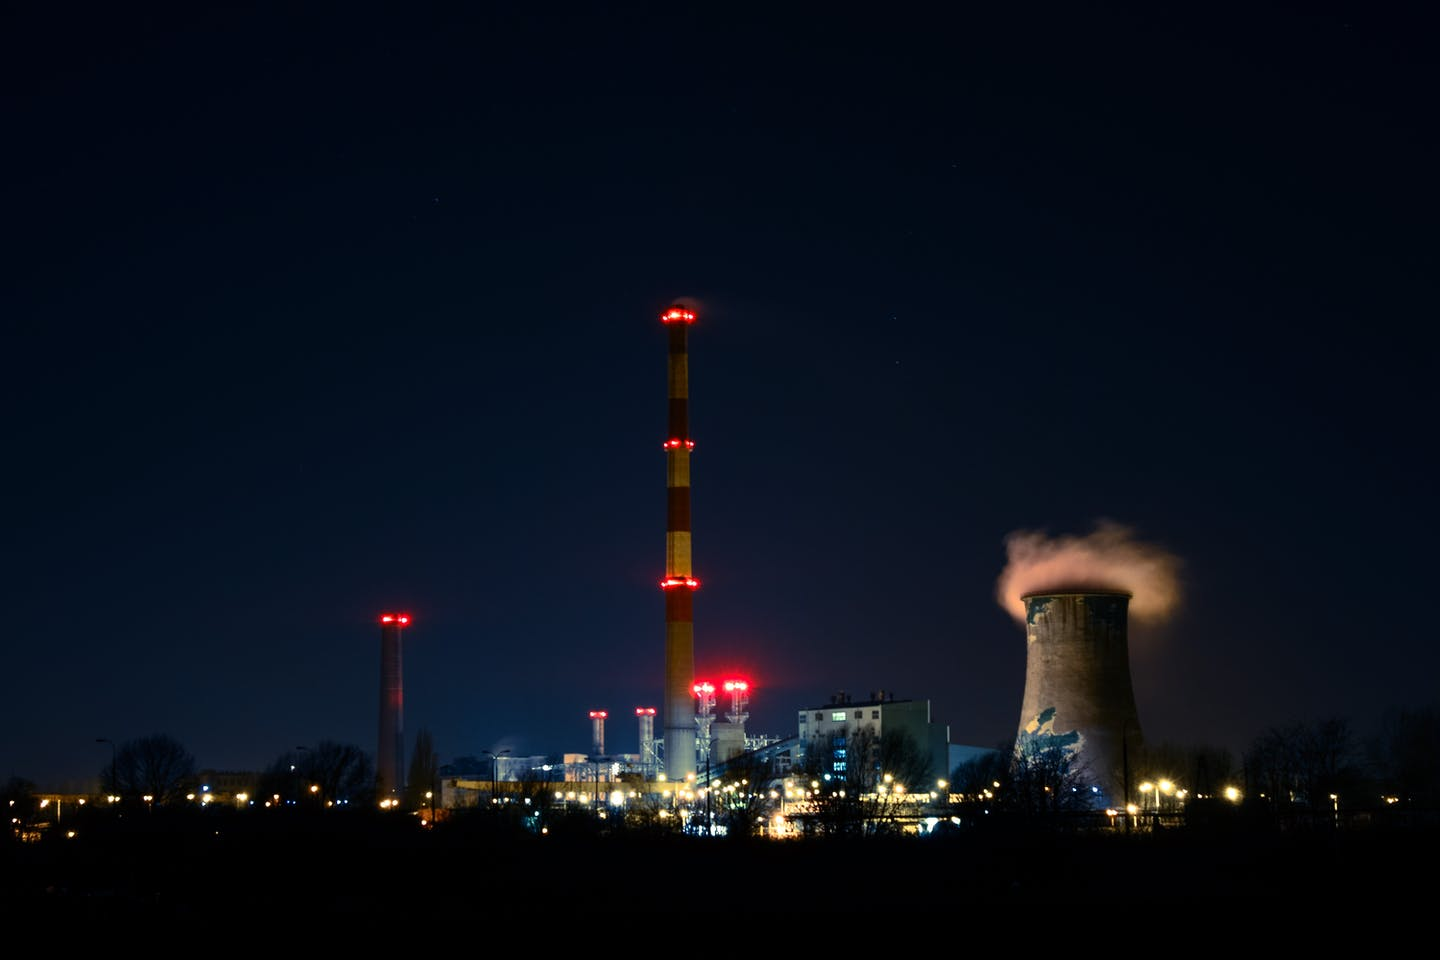 emissions from a power plant